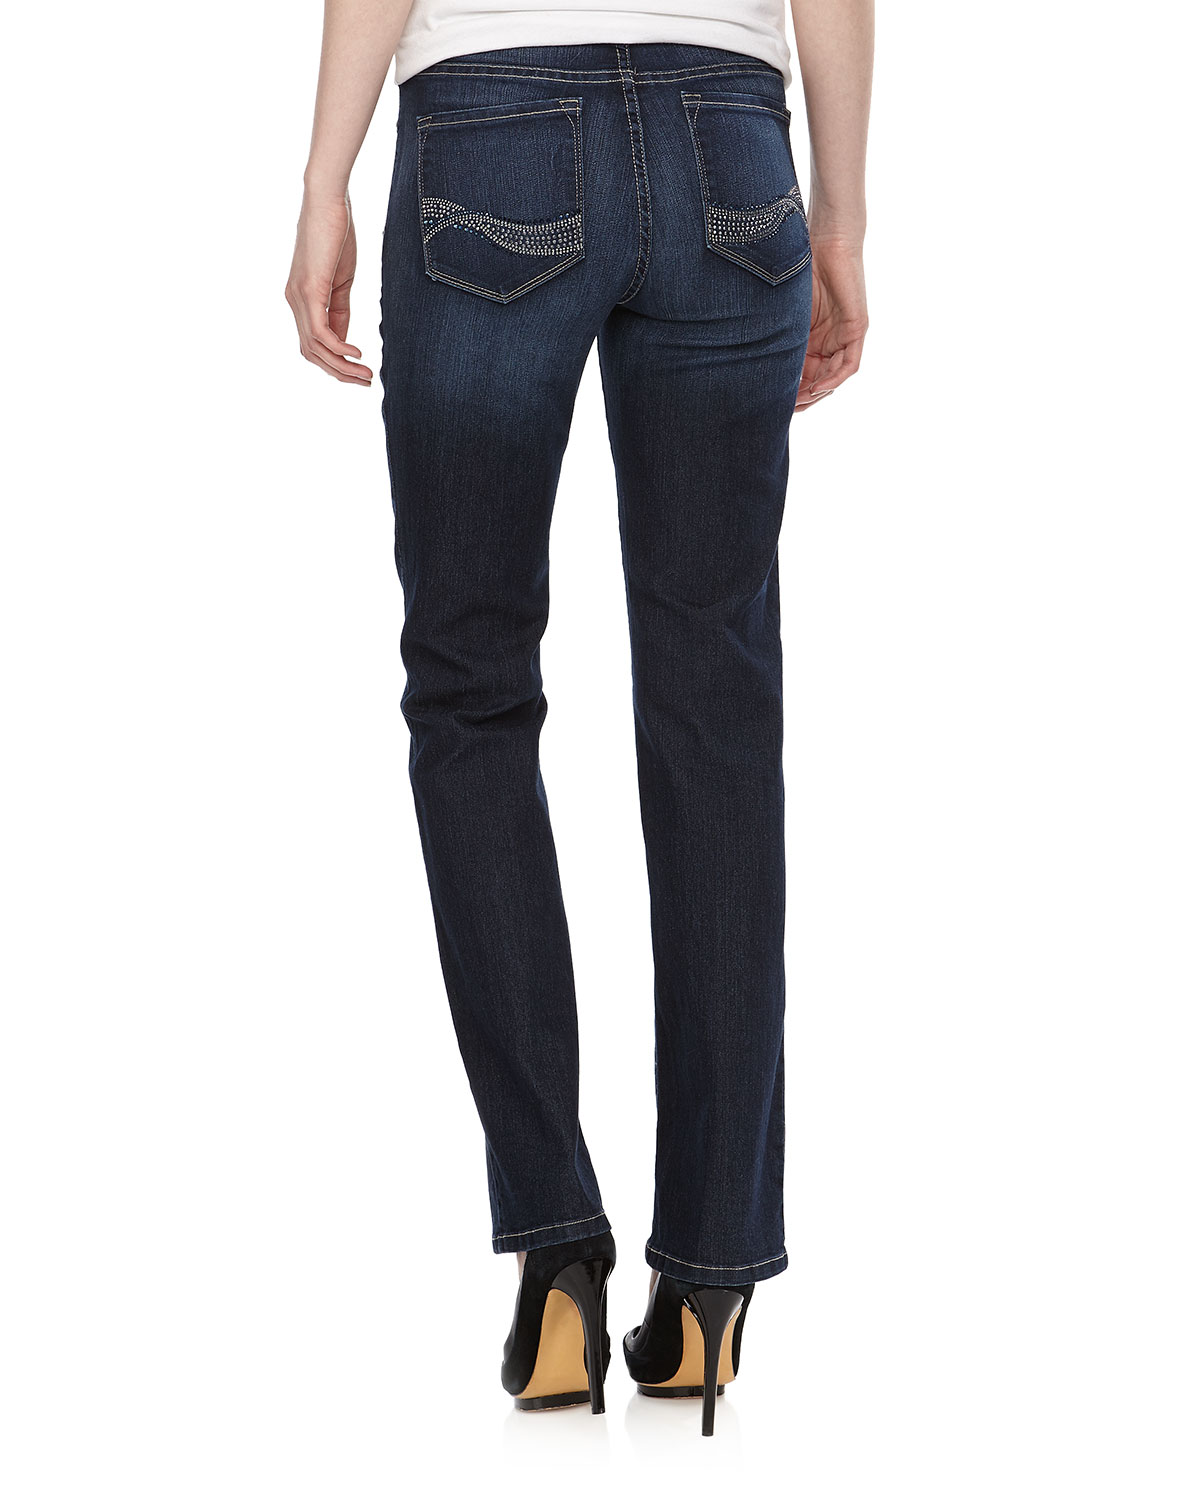 Lyst - Not Your Daughter'S Jeans Marilyn Embellished ... | 1200 x 1500 jpeg 155kB